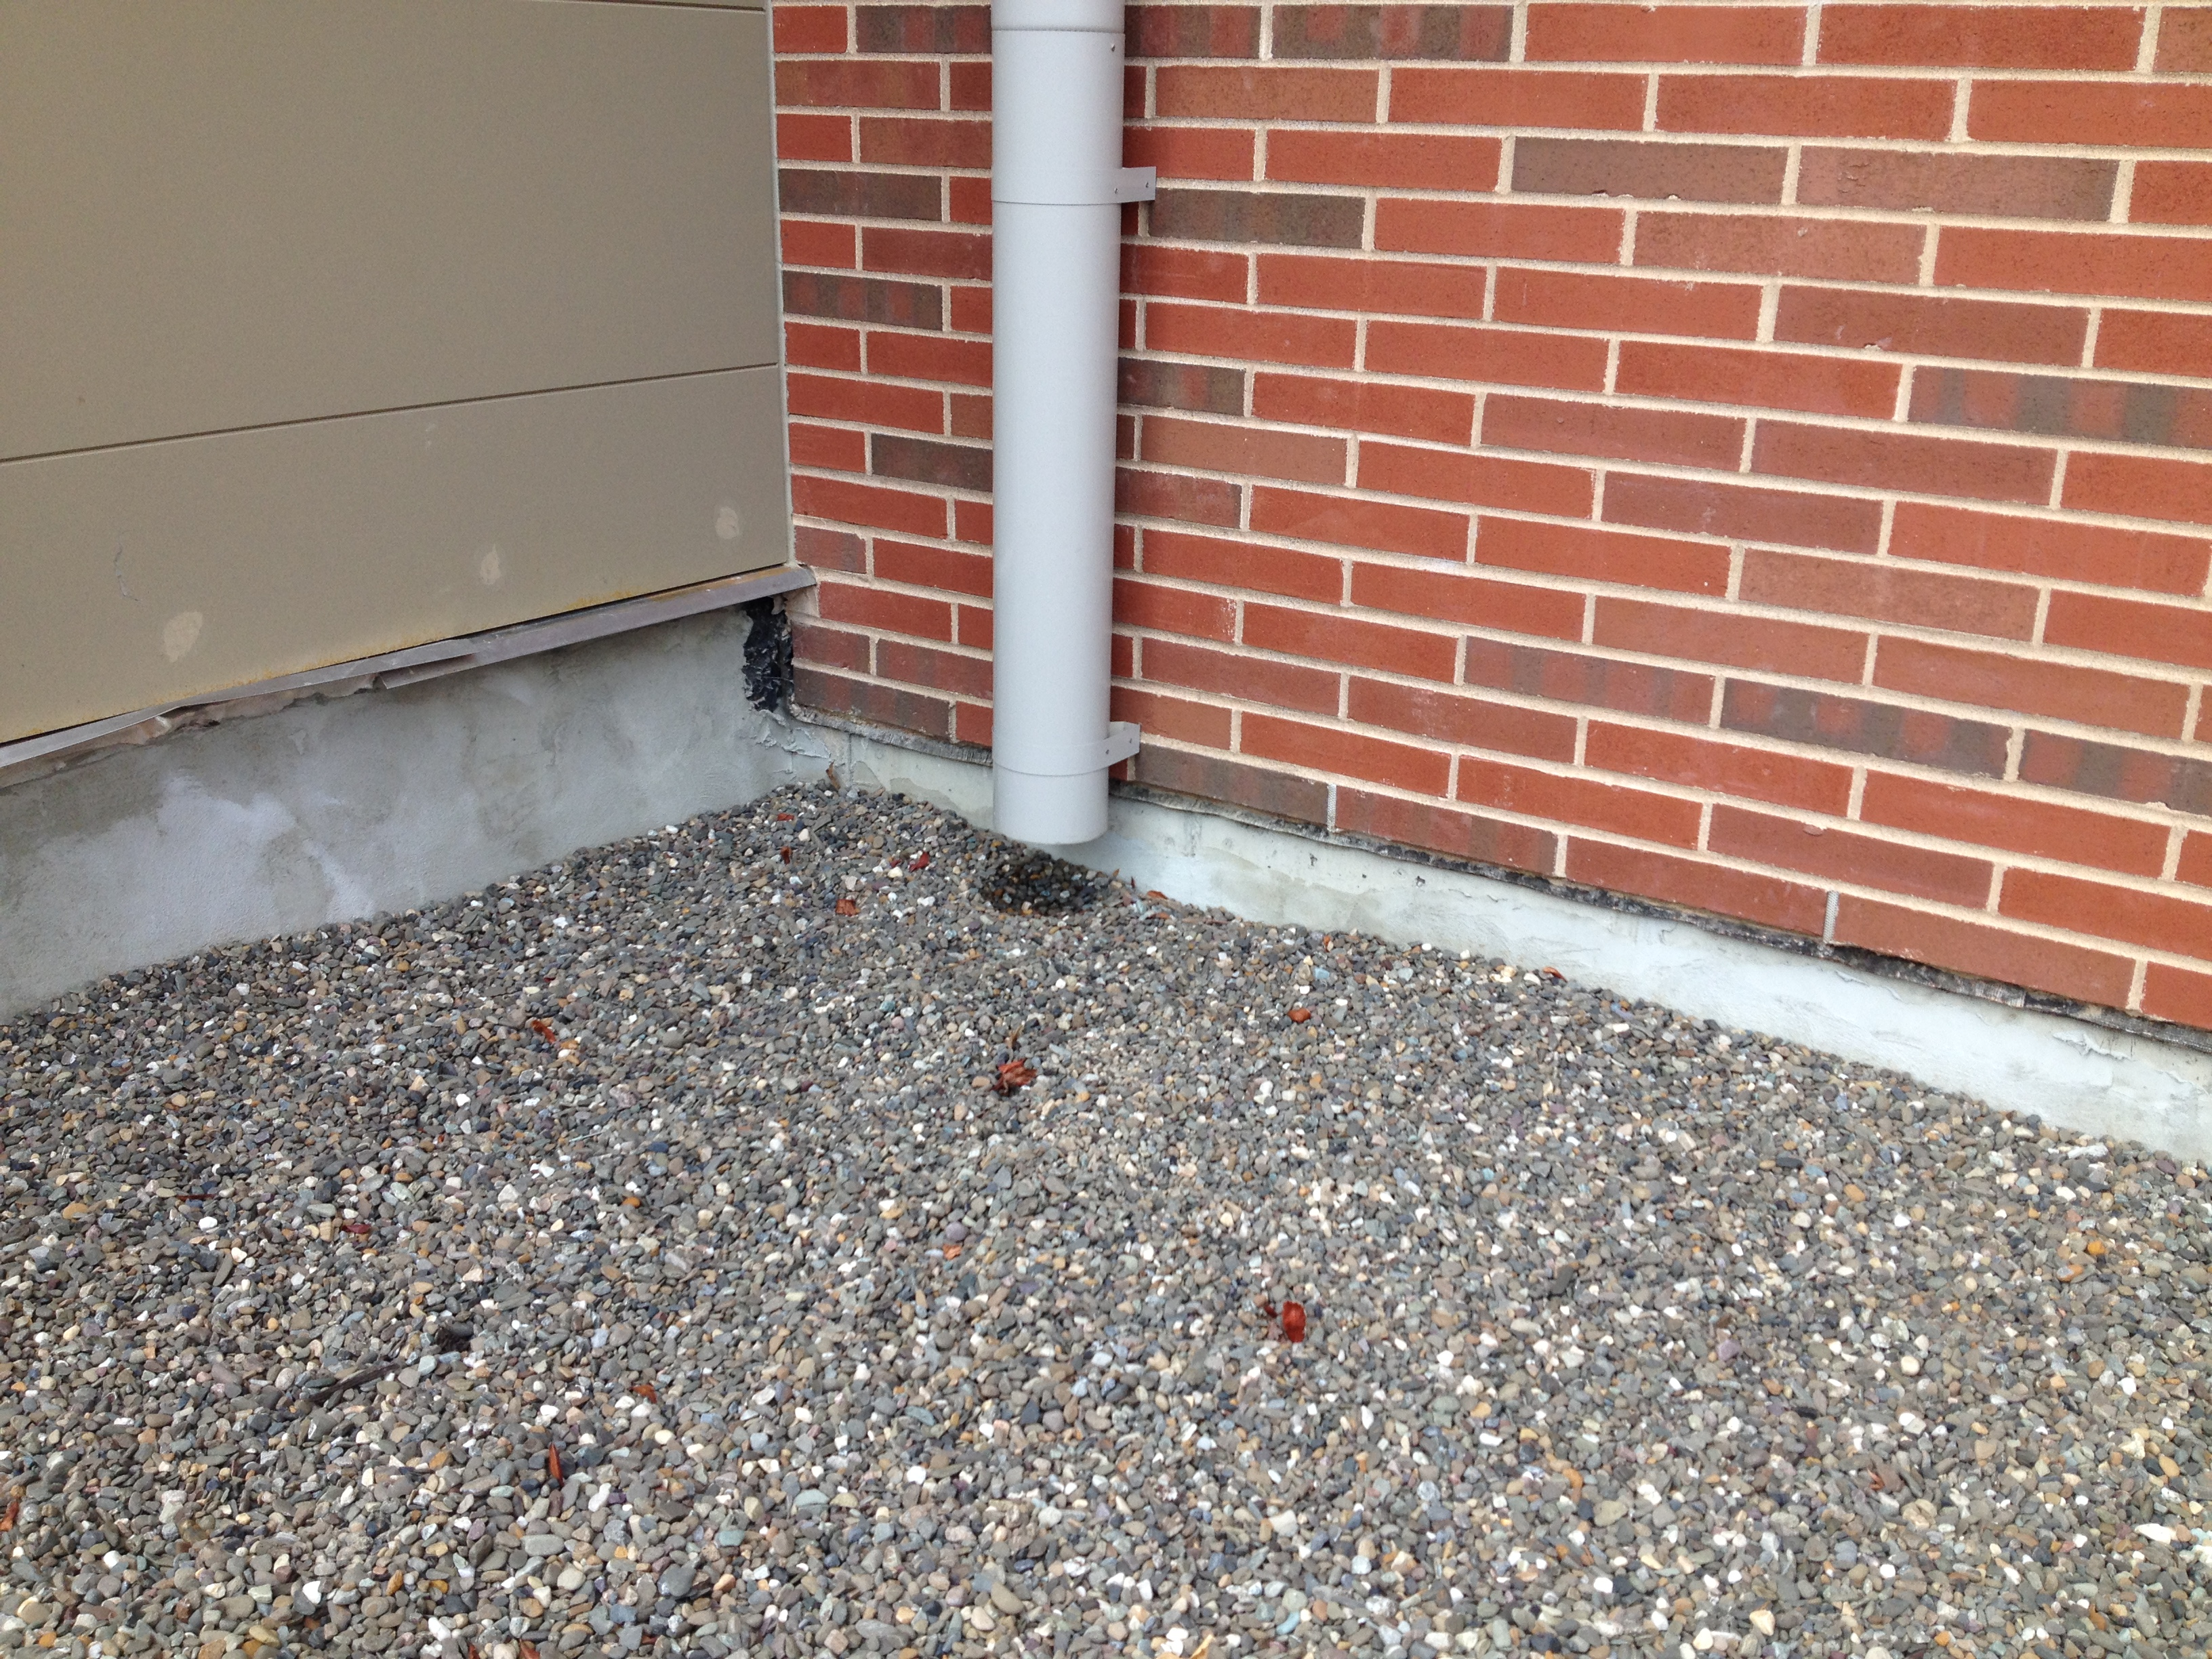 Downspout at Ridgeview